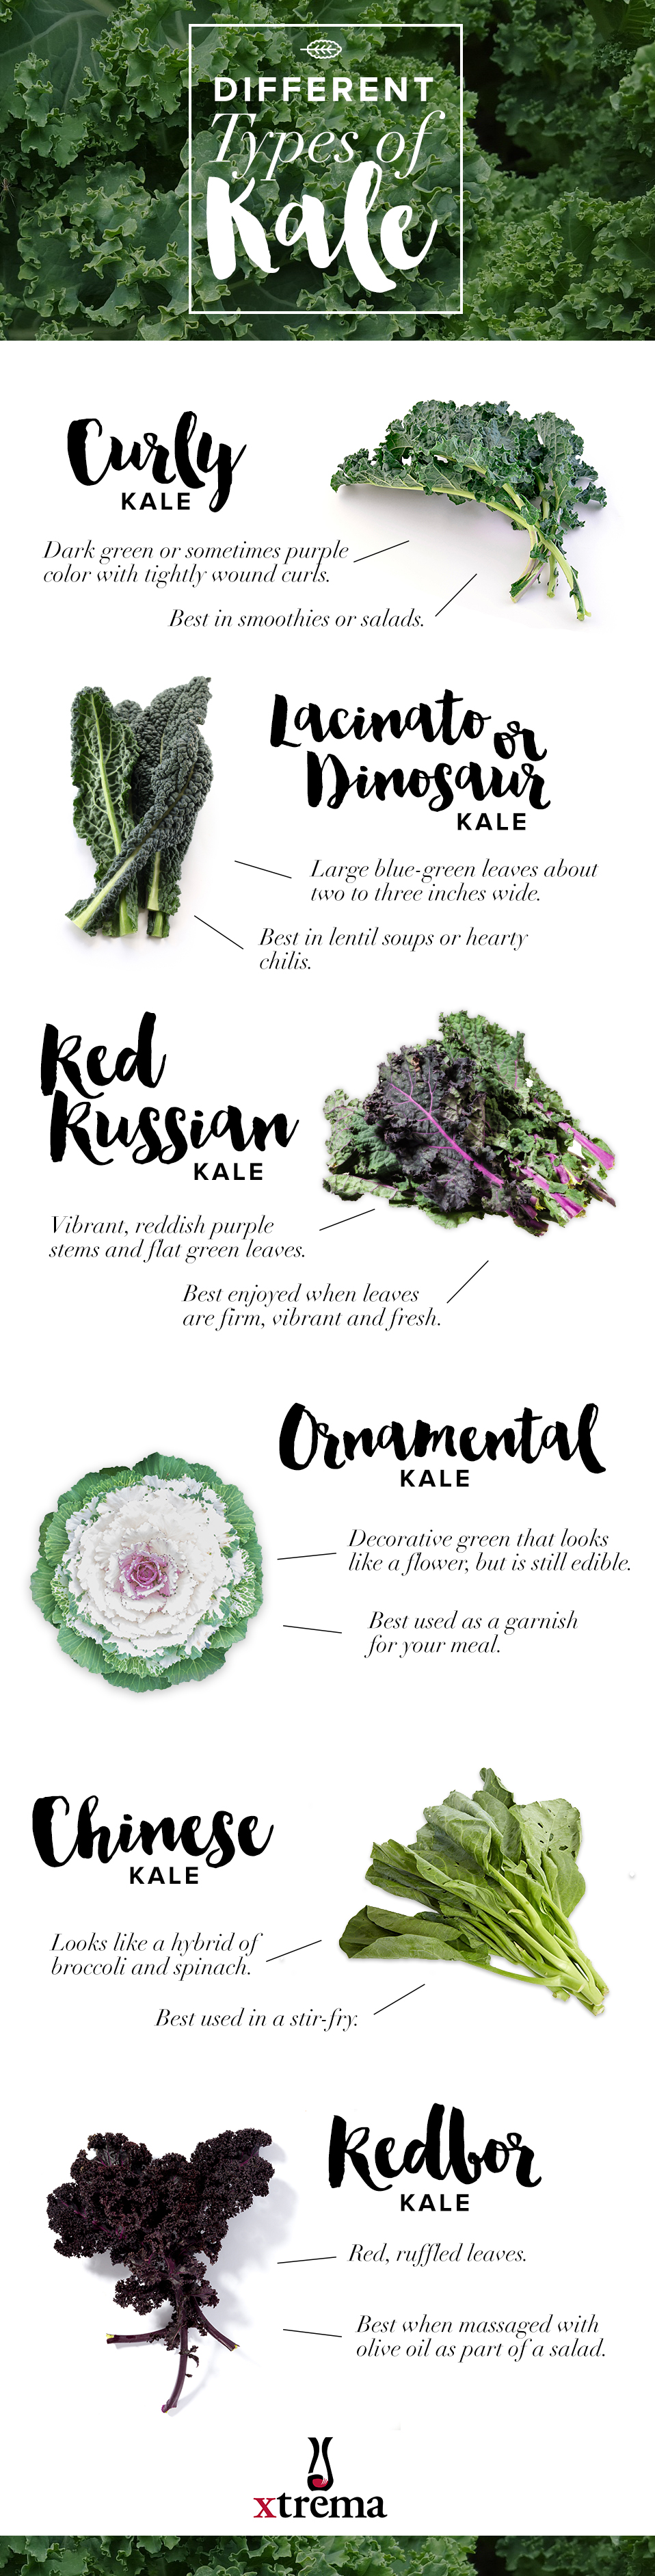 The Different Types of Kale